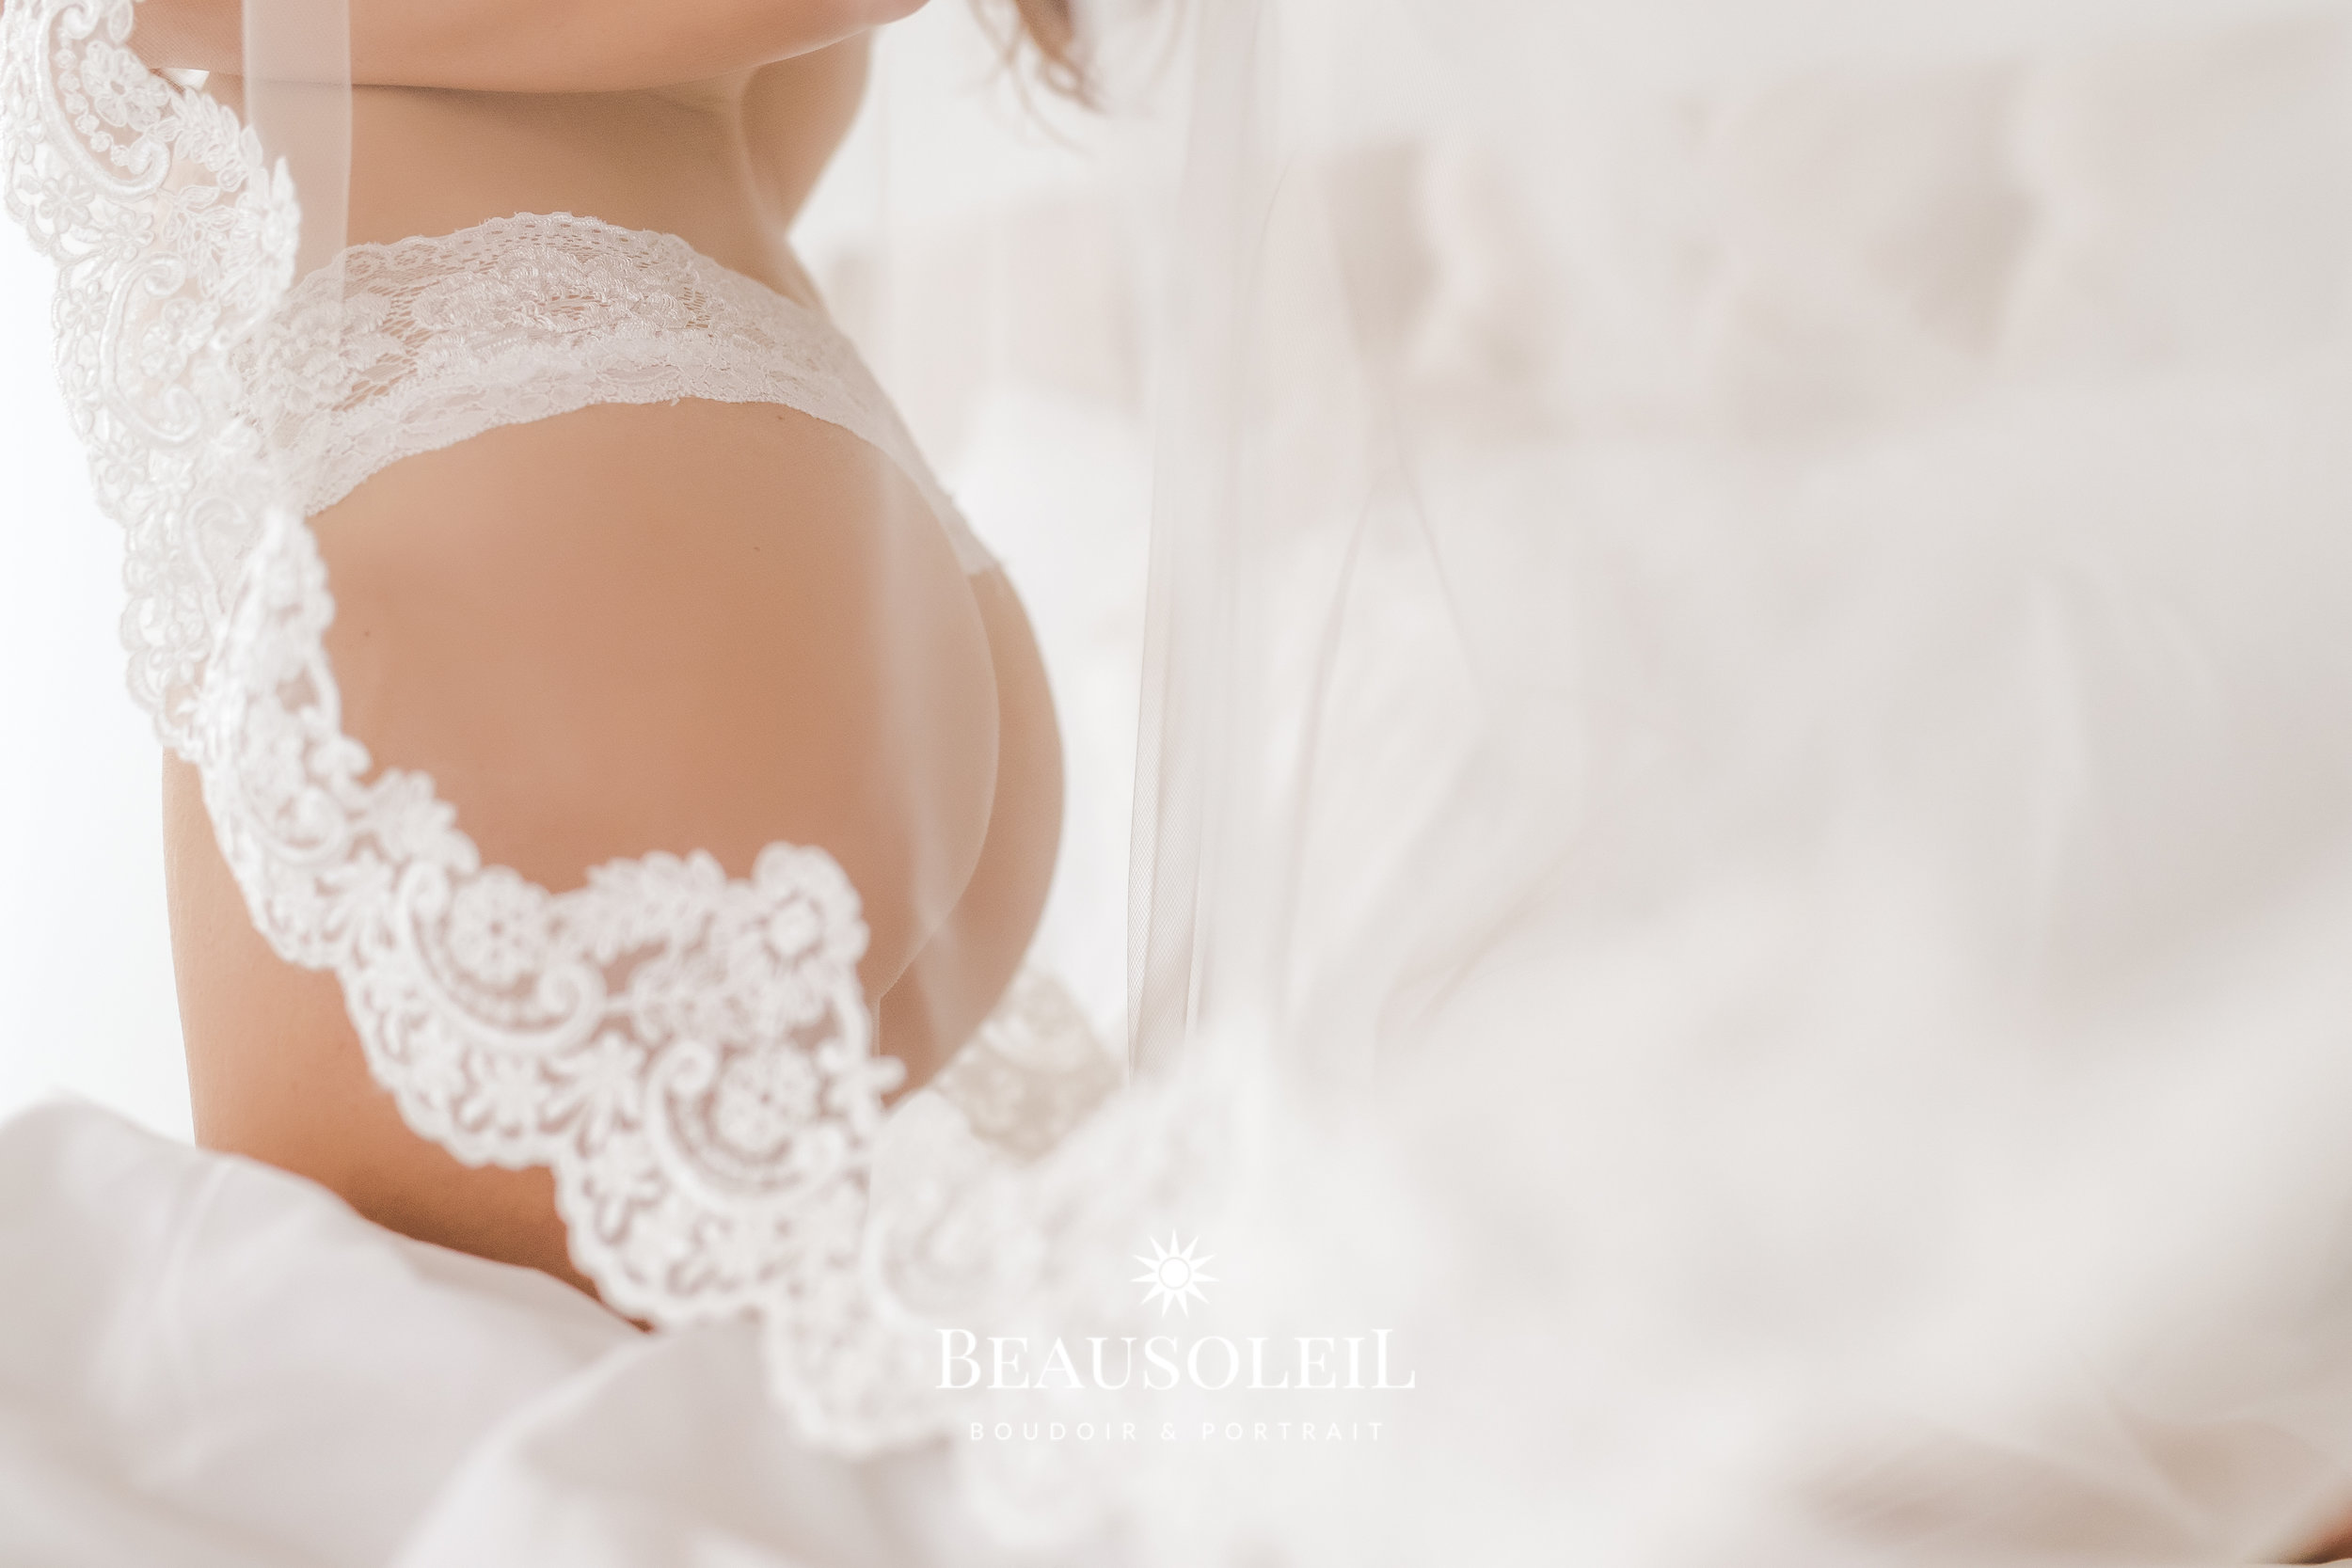 Want to see more? - Become apart of our boudoir tribe by joining our group